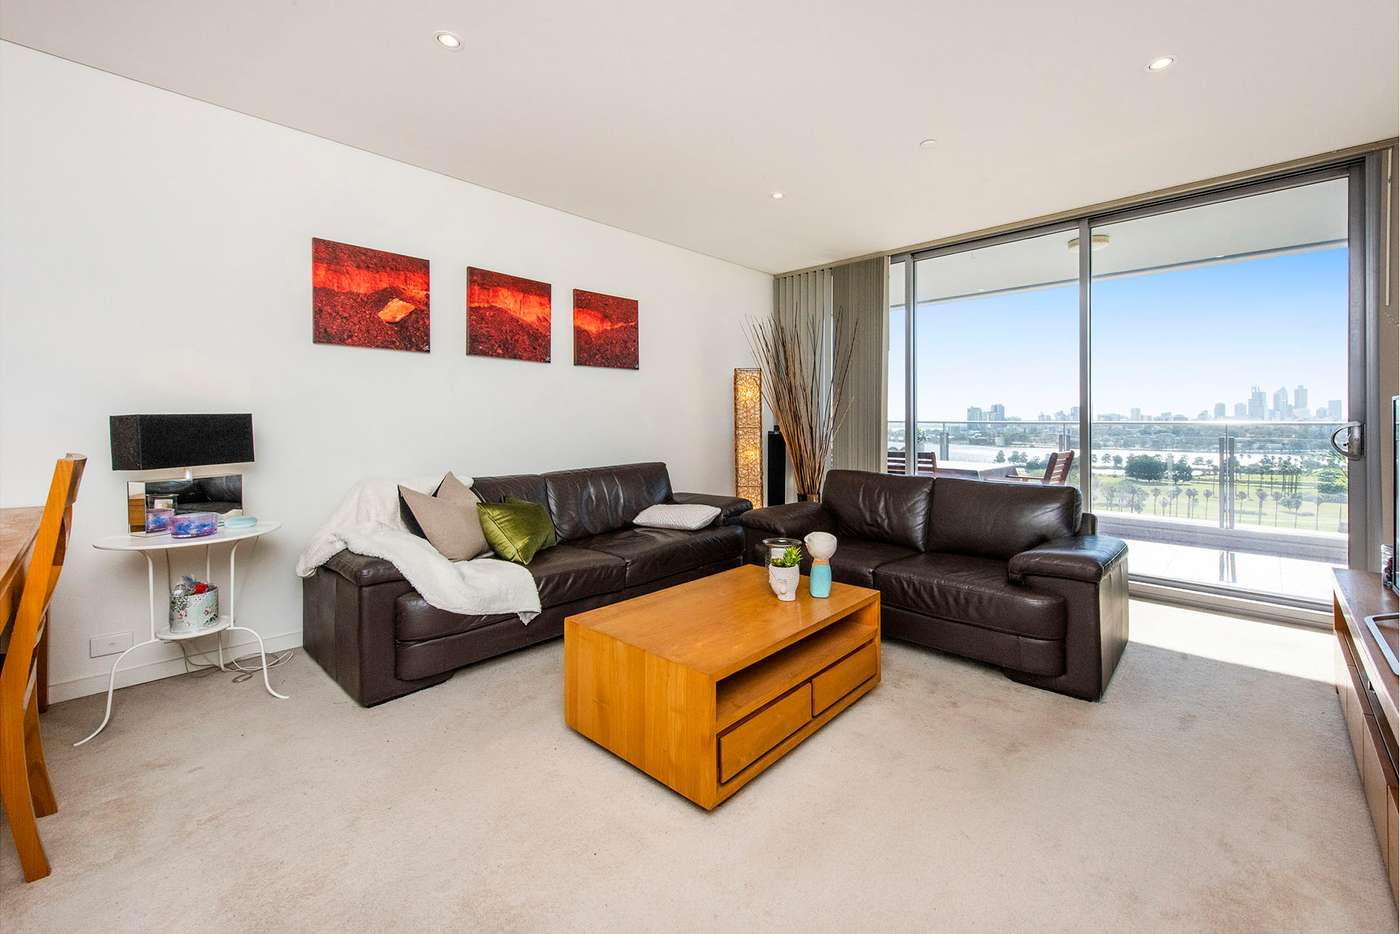 Main view of Homely apartment listing, 1202/30 The Circus, Burswood WA 6100